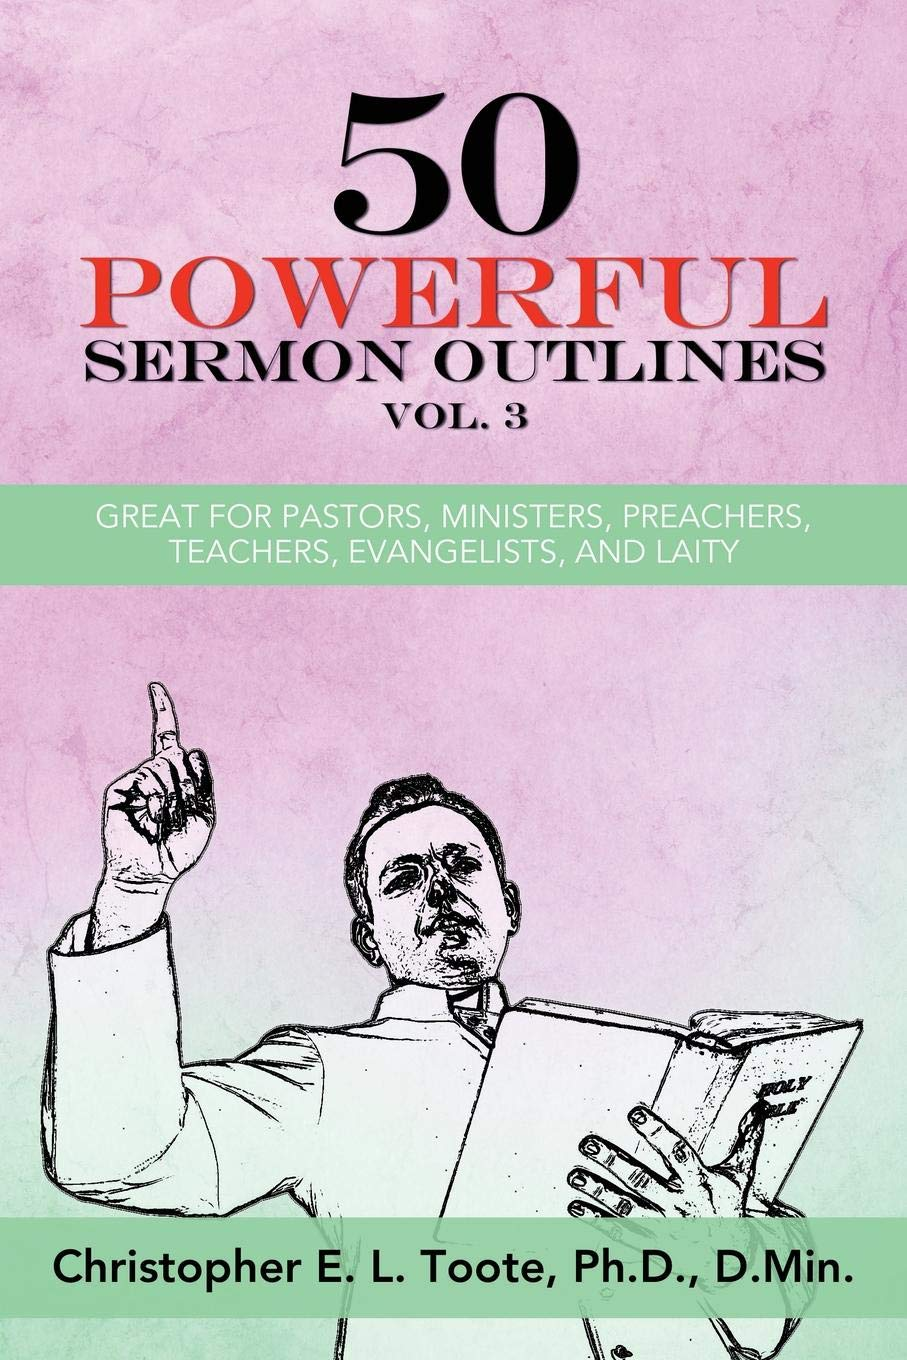 50 POWERFUL SERMON OUTLINES, VOL  3: GREAT FOR PASTORS